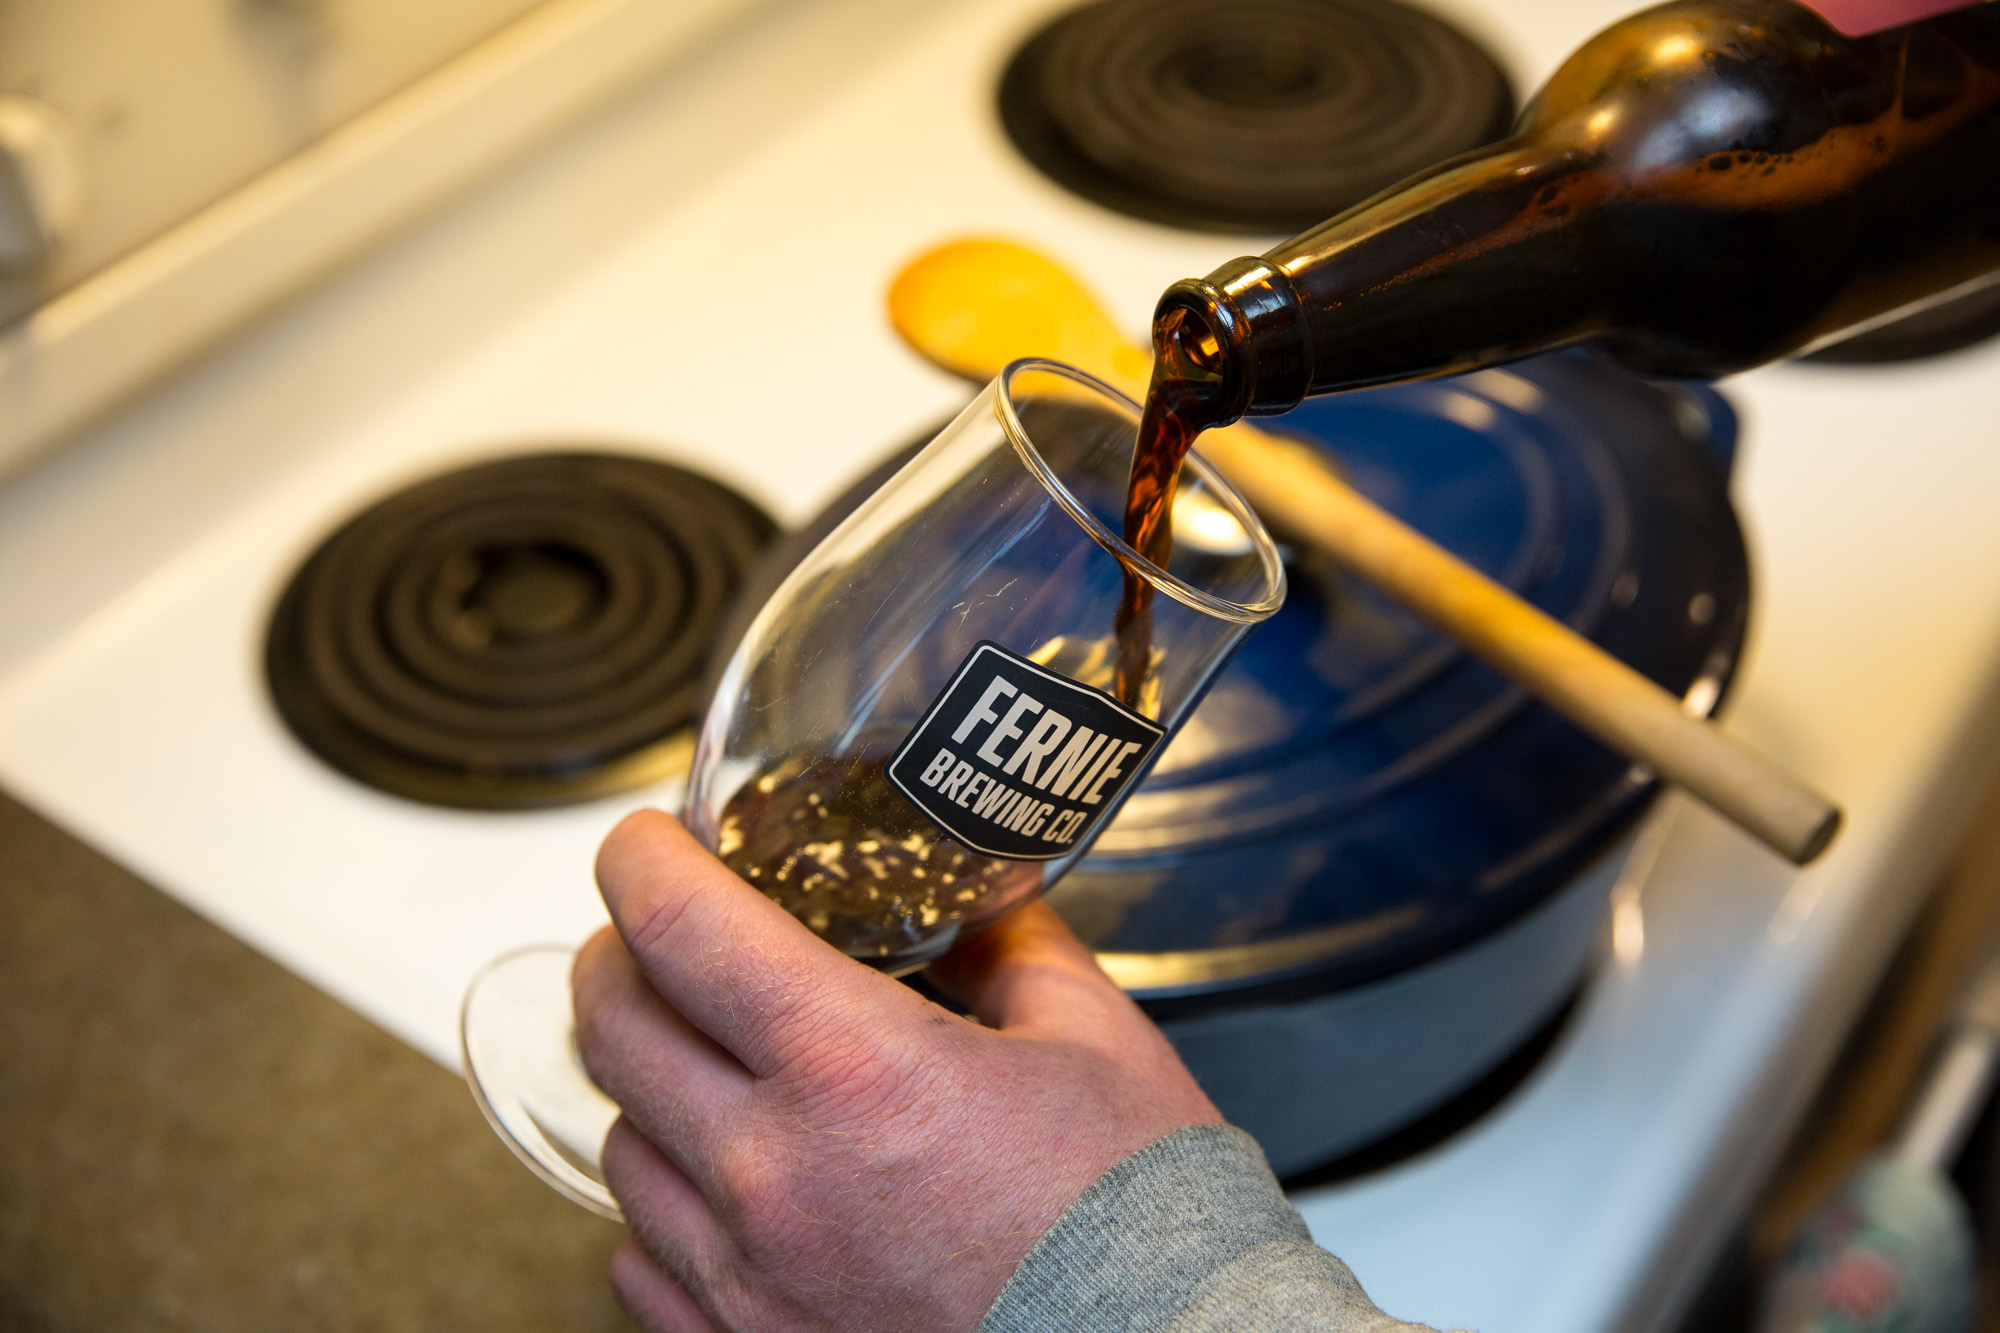 Beer being poured into a Fernie Brewing Co. glass next to a stove with a blue pot cooking on it.